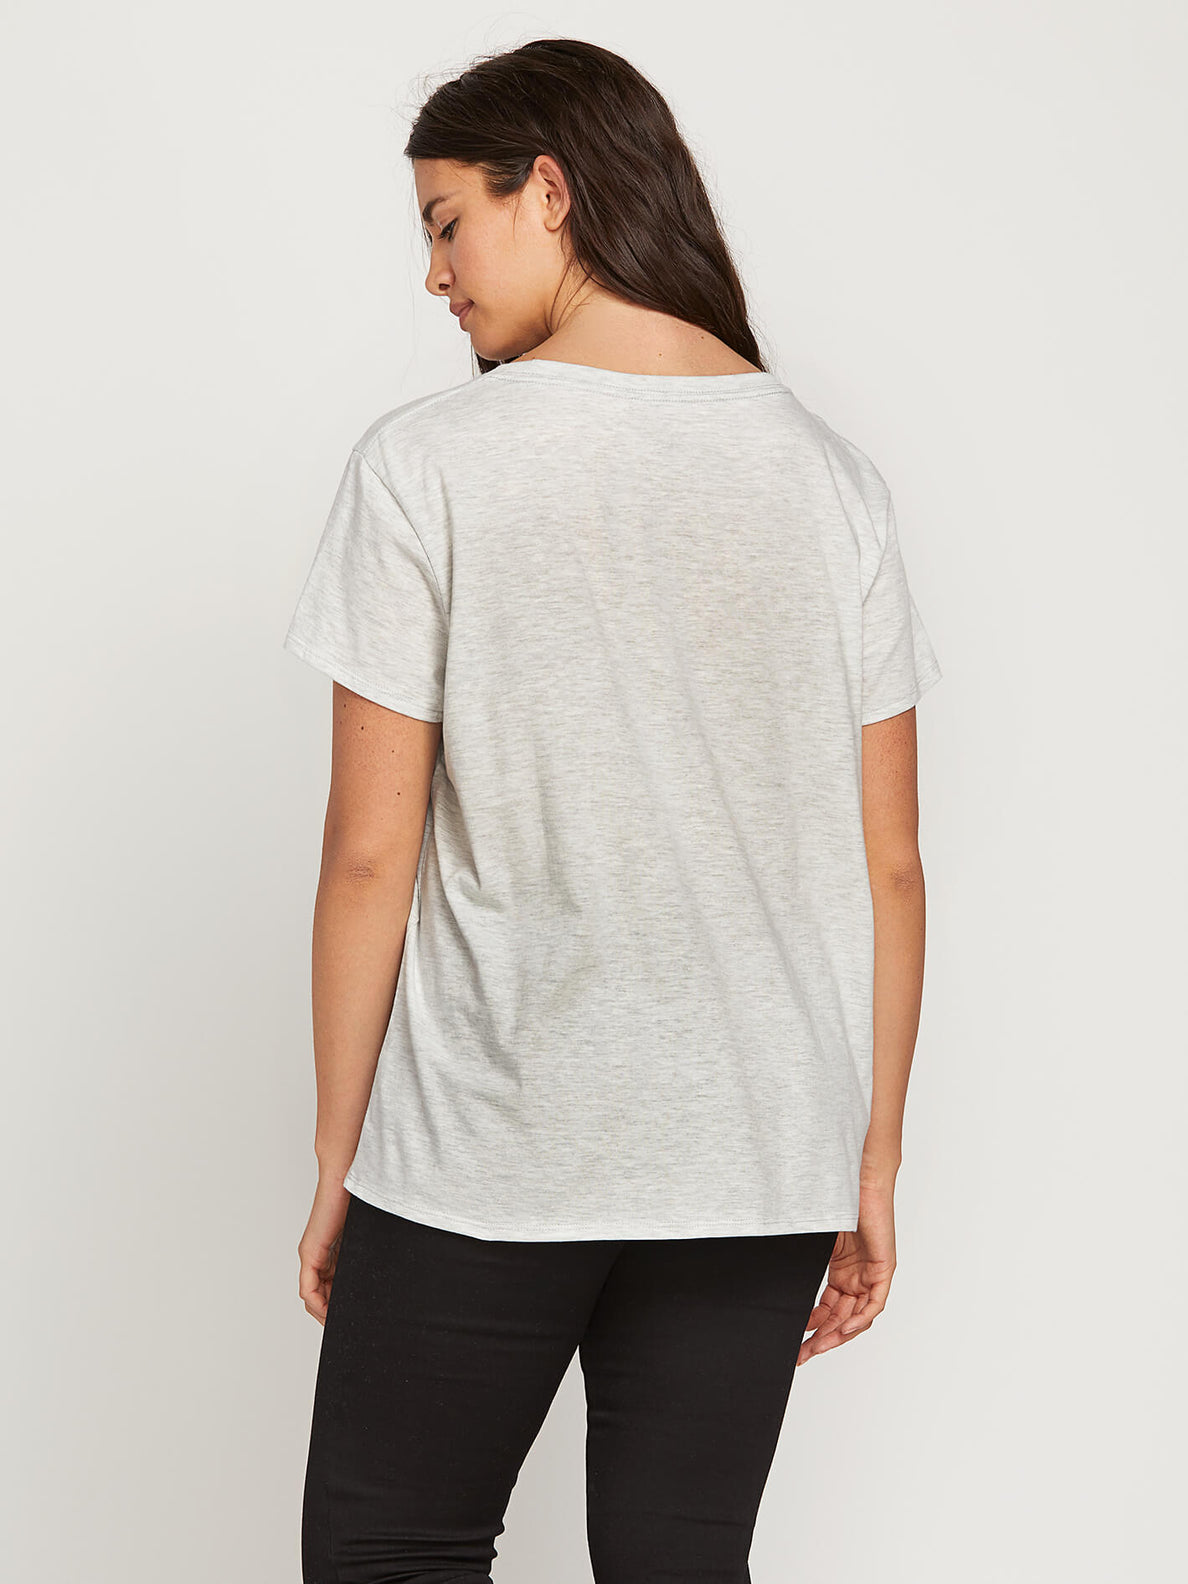 Easy Babe Rad 2 Tee In Light Grey, Back Extended Size View